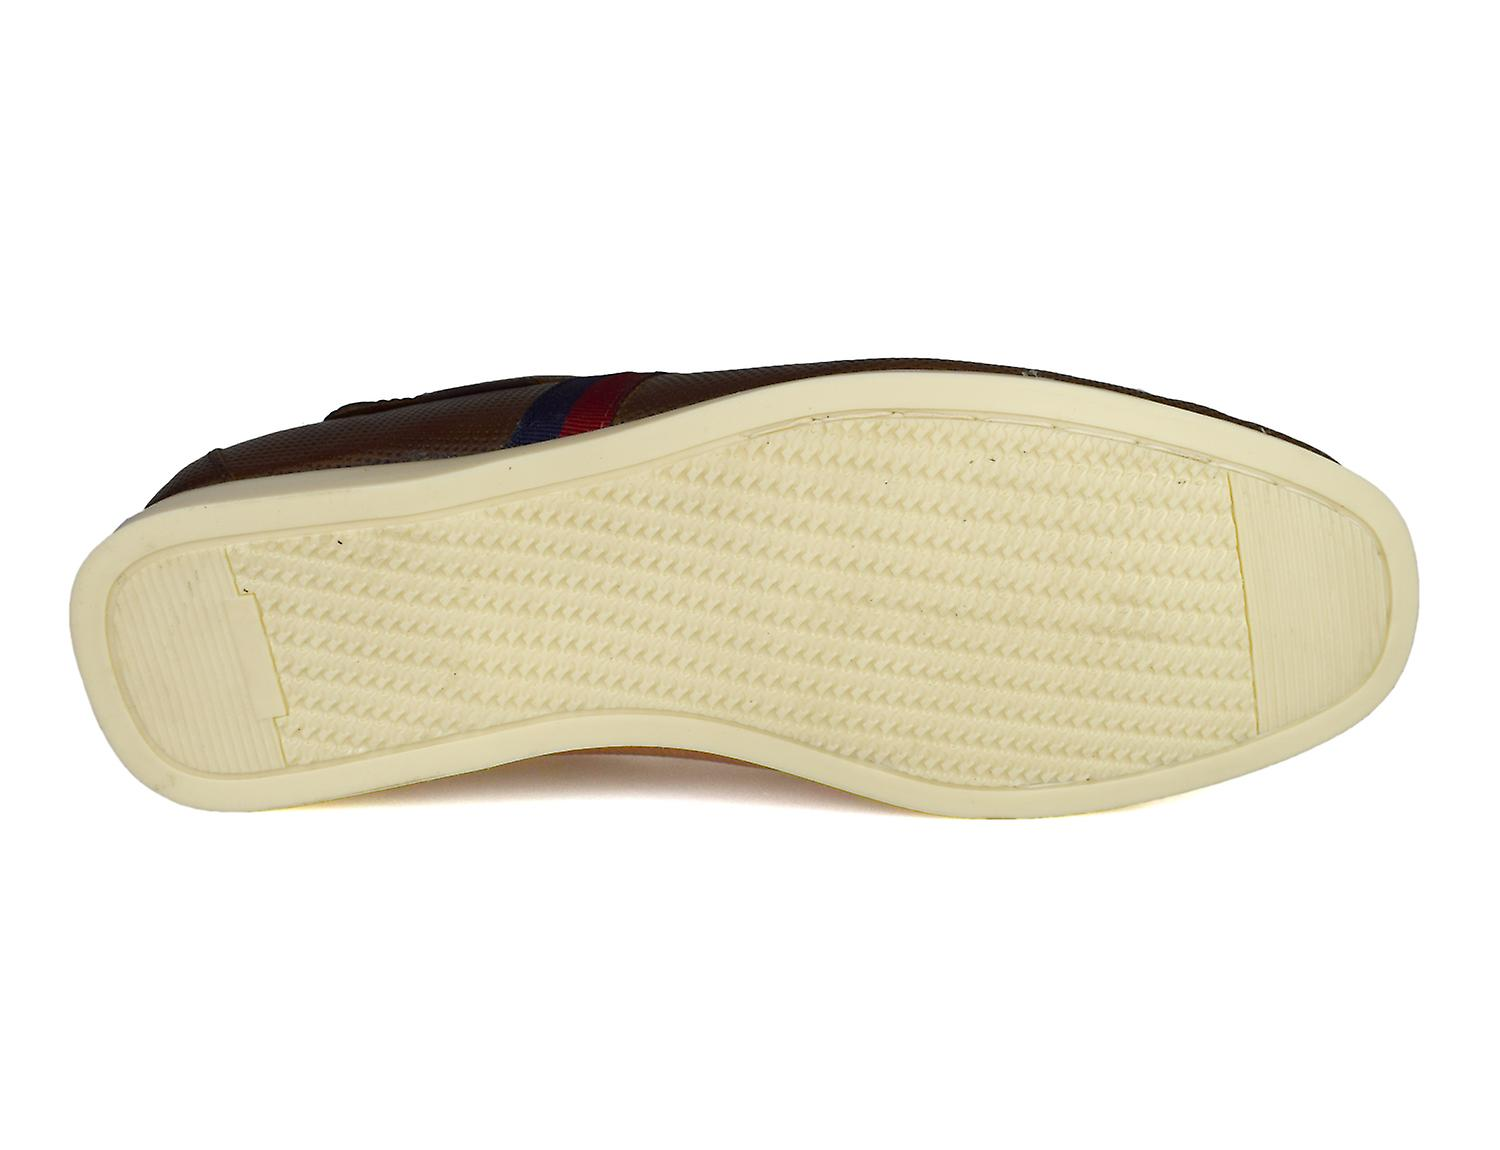 Red Tape Edward Mens Tan Leather Deck / Boat Shoes CDhUvN